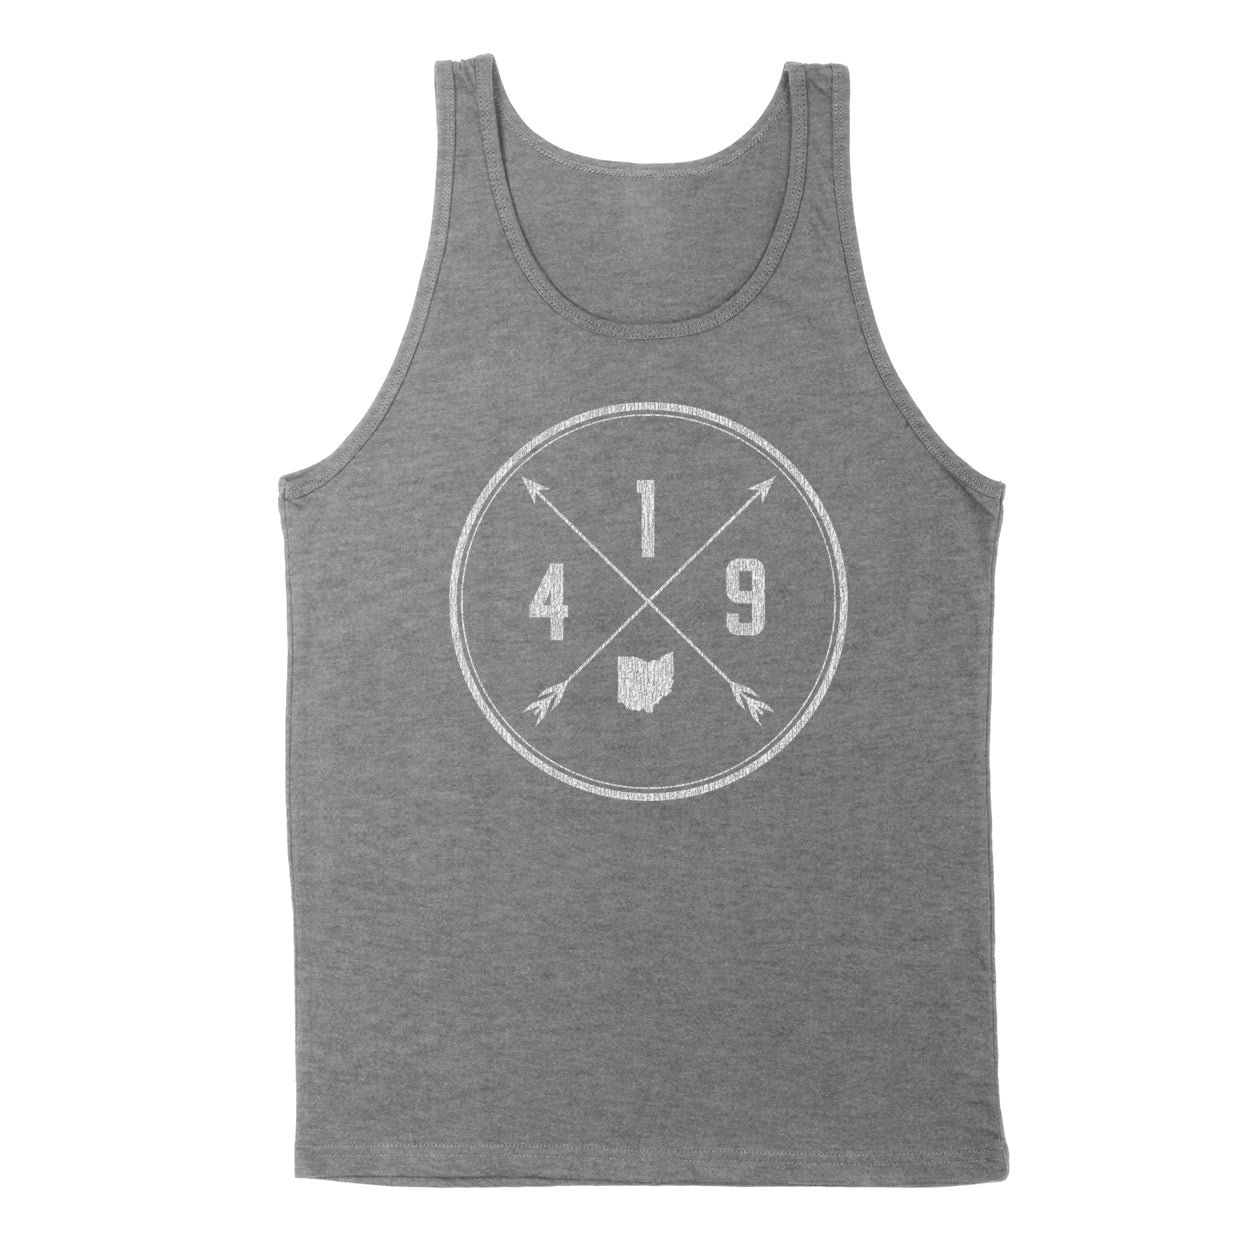 419 Area Code Cross Men's Unisex Tank - Clothe Ohio - Soft Ohio Shirts